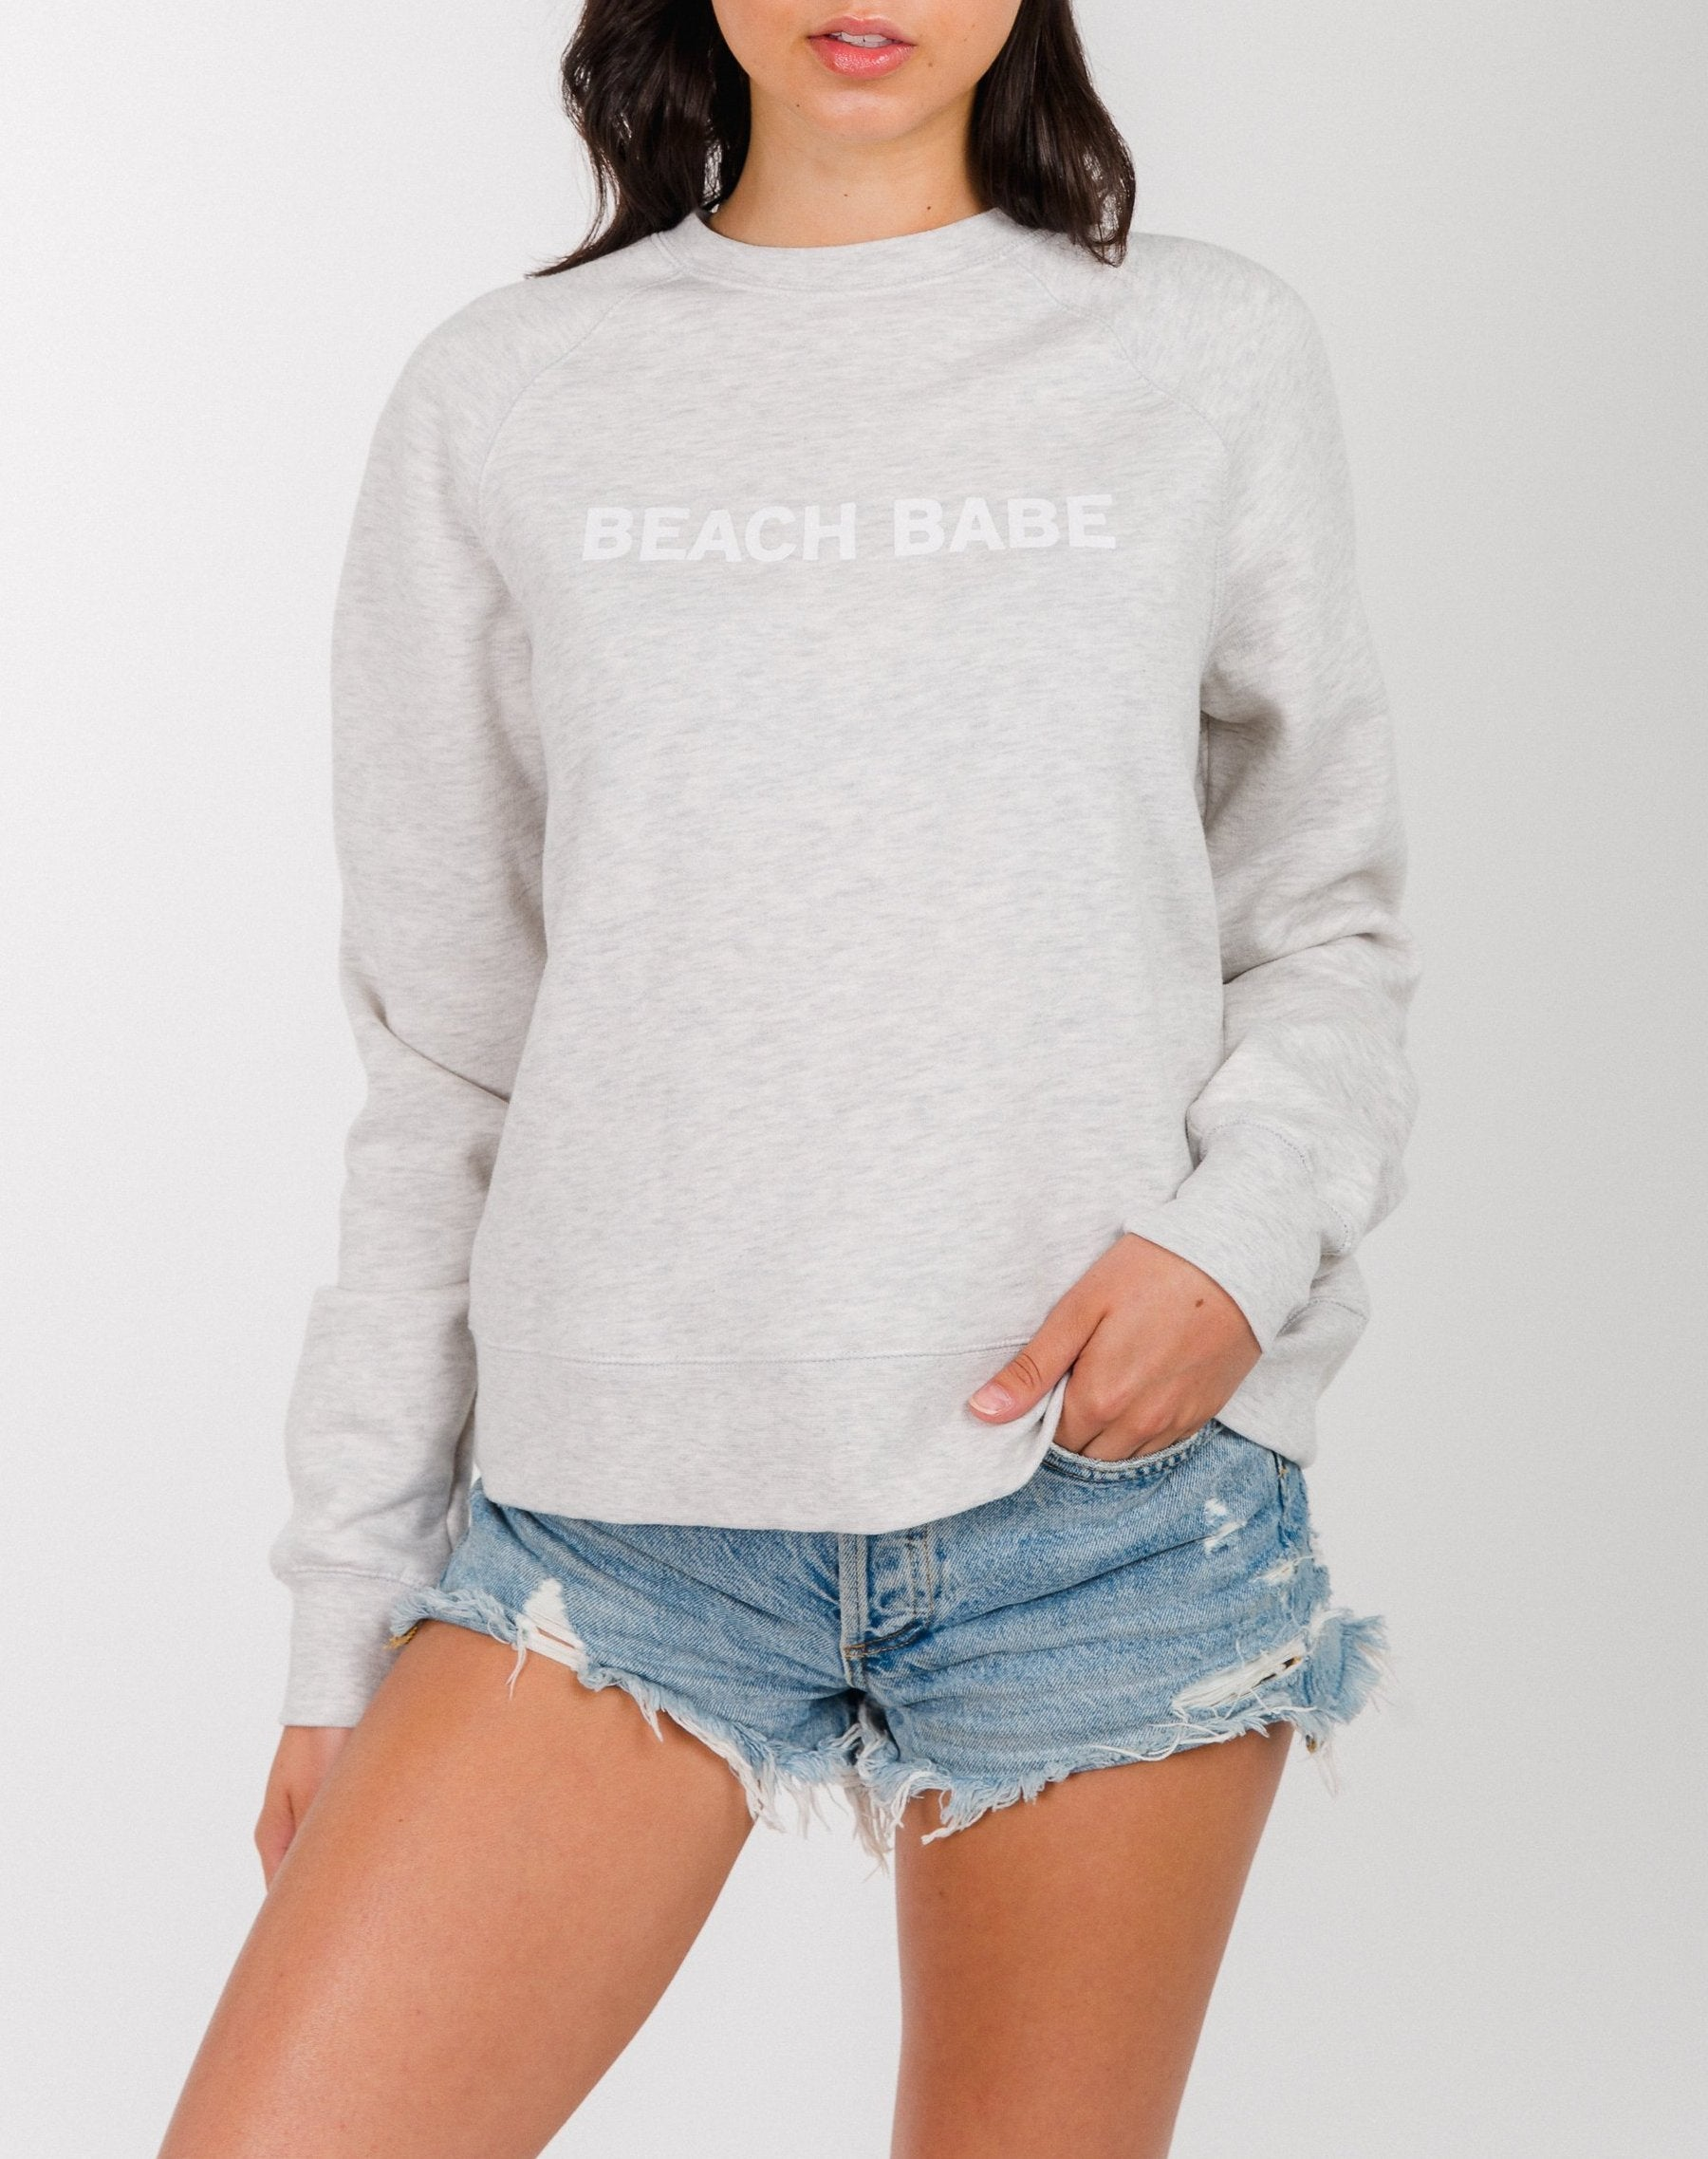 """Beach Babe"" Middle Sister Crew- Oatmeal - Shirts - The Valley Boutique - Canada Online Shopping"